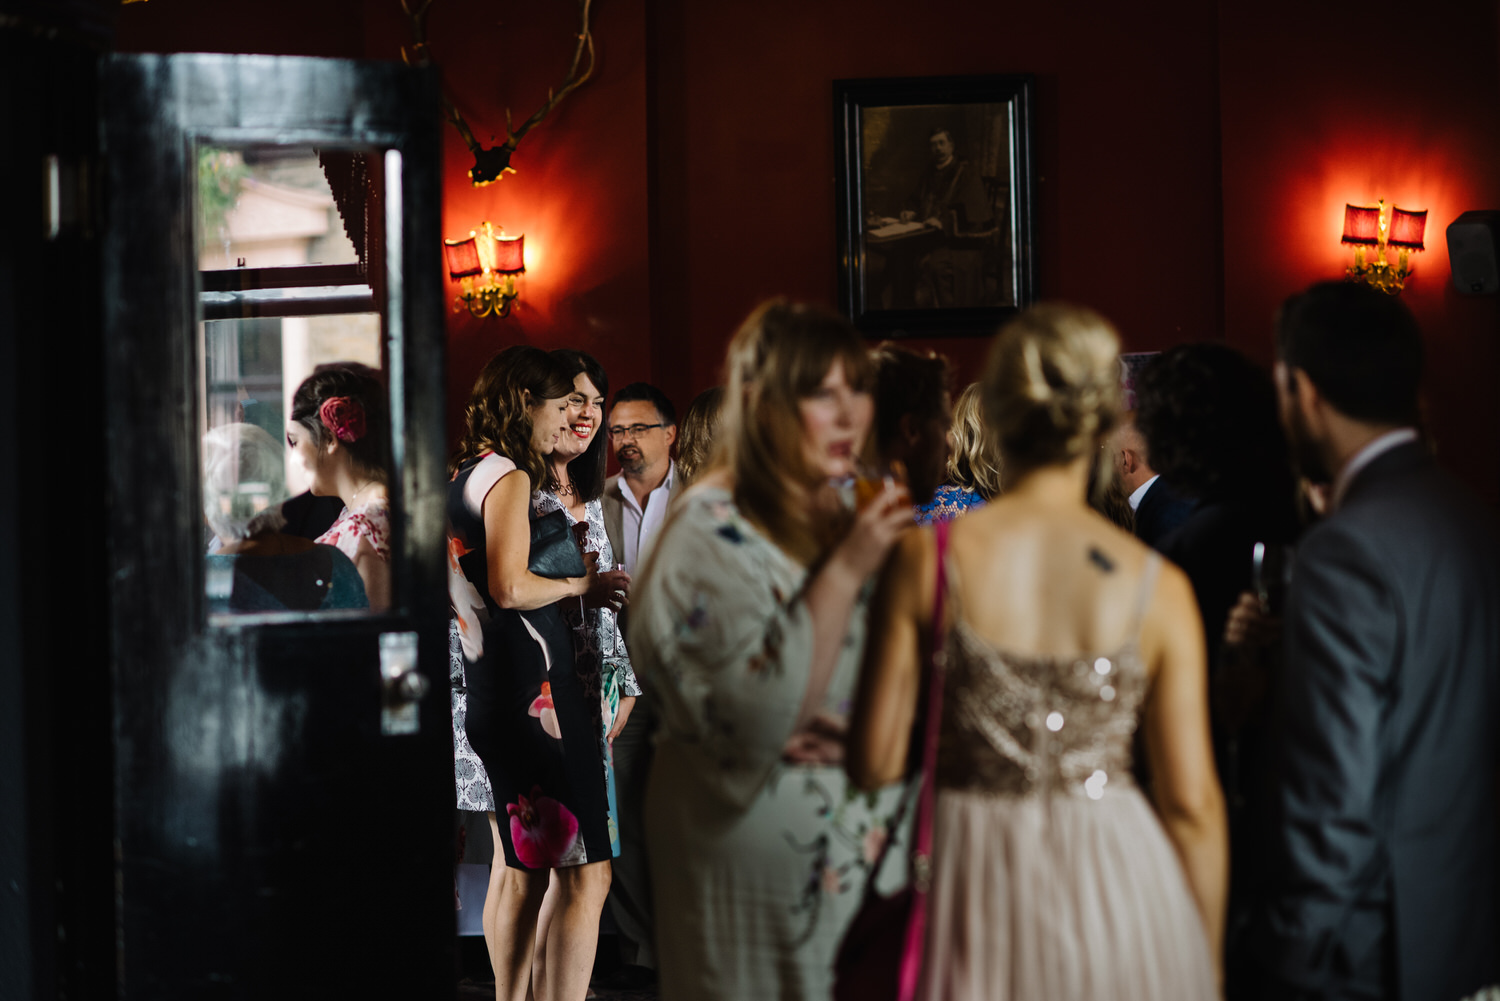 London pub wedding venues